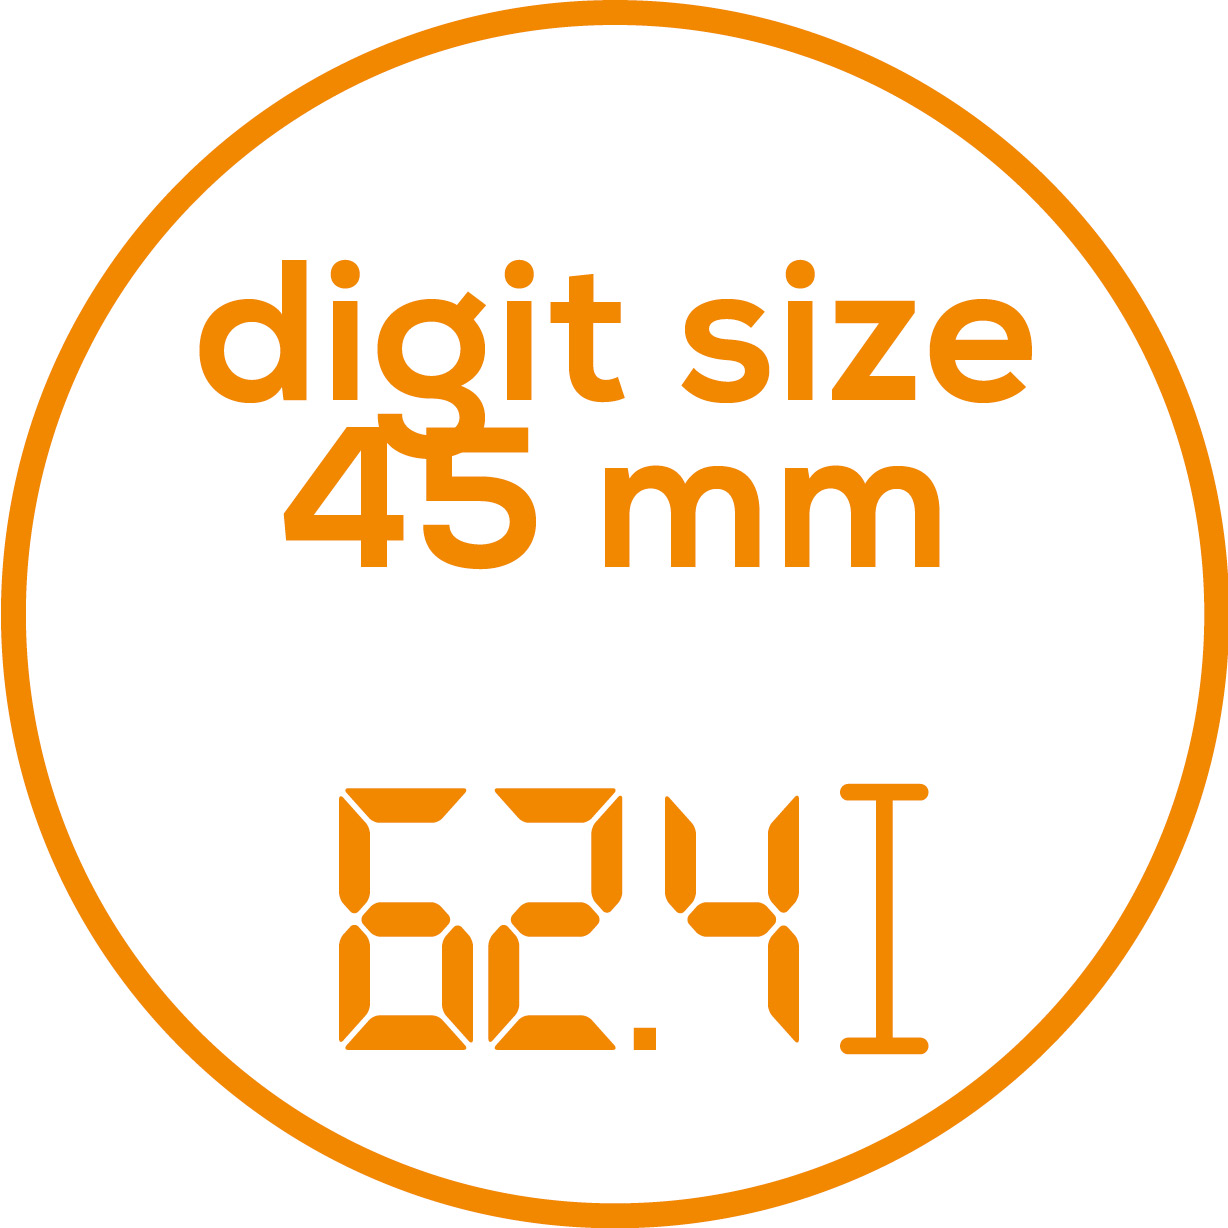 Digit size Digit size: 45 mm